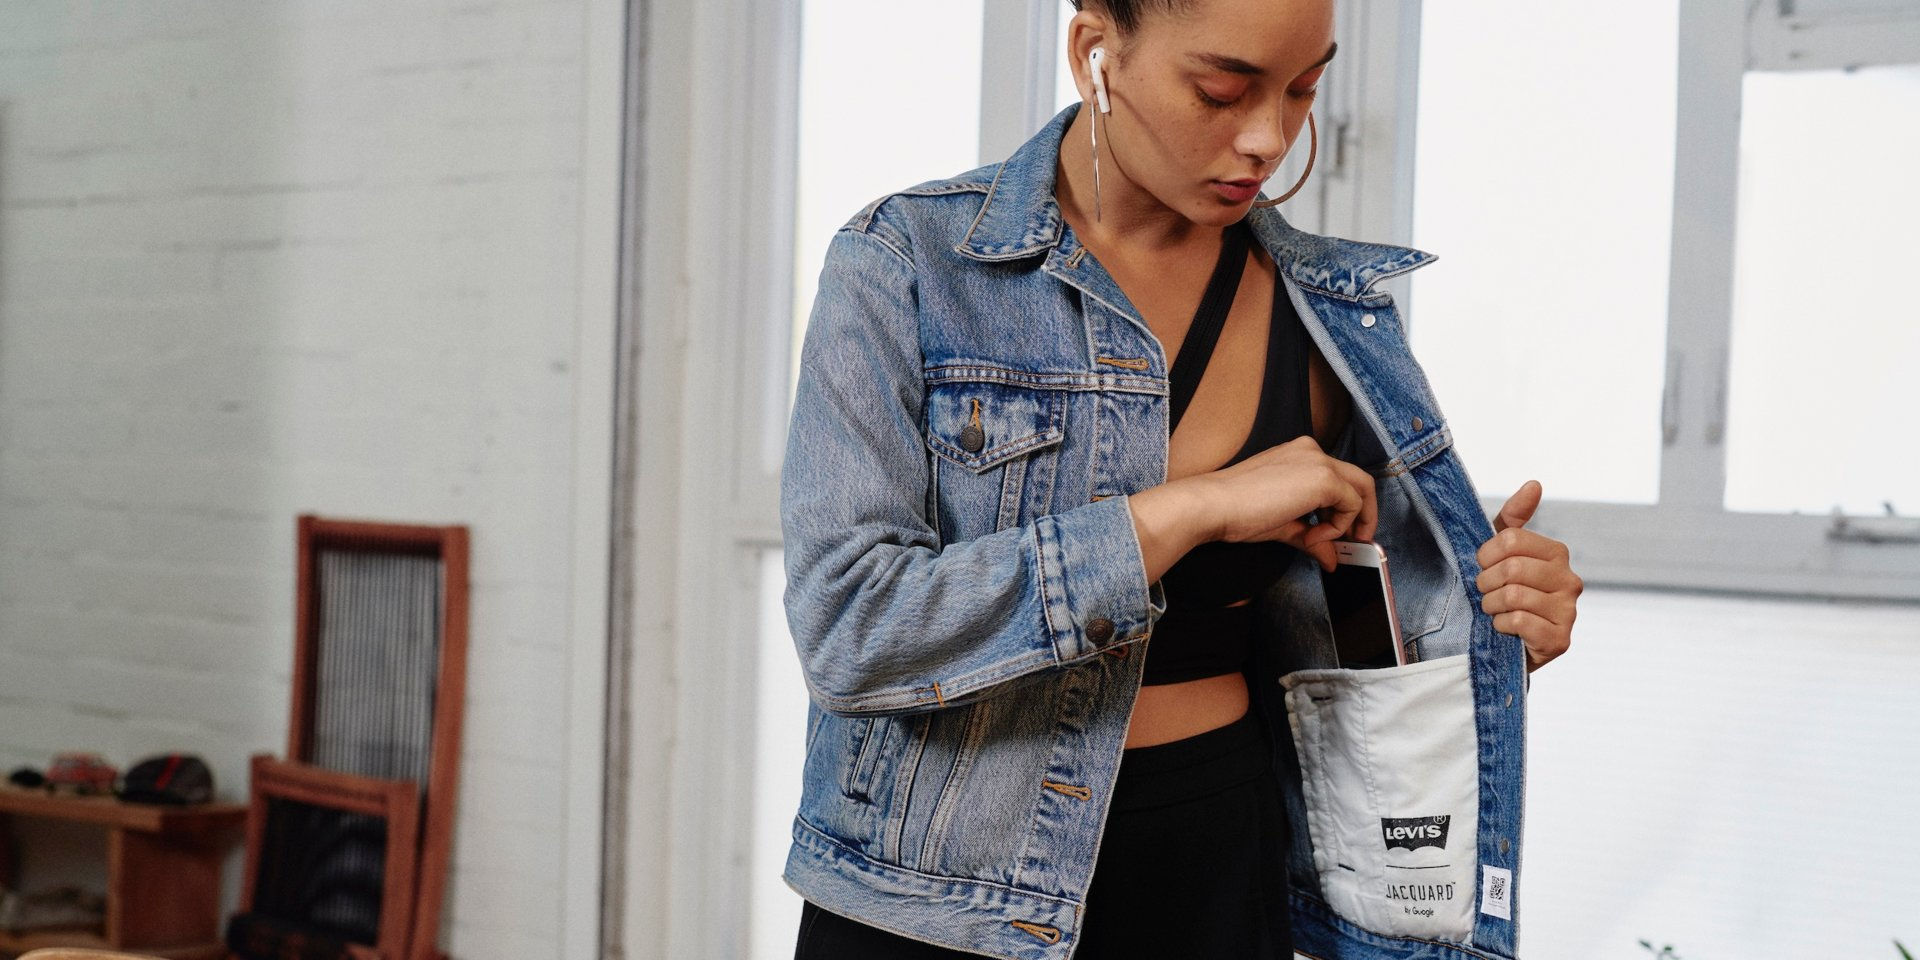 Levi's and Google are teaming up once again to launch denim jackets you can hardly tell are tech-enabled